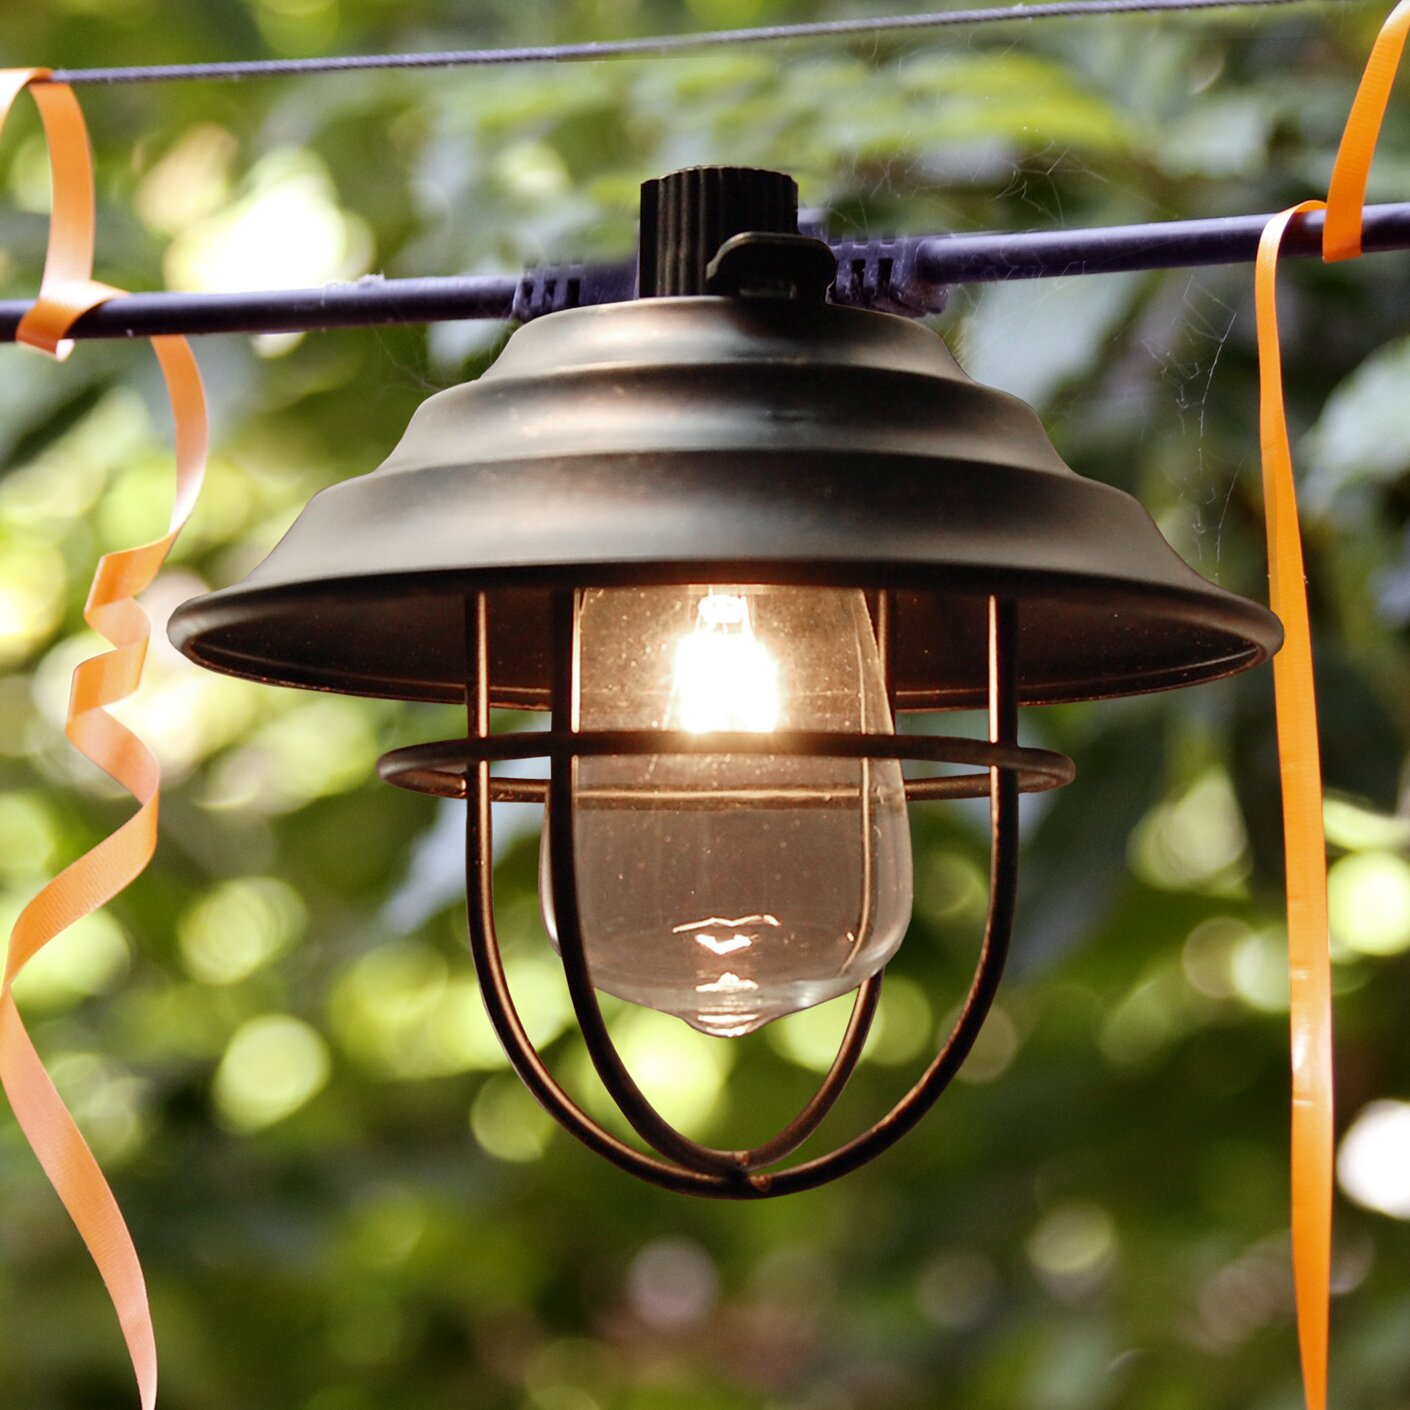 LumaBase 10-Light 10 ft. Lantern String Lights Wayfair